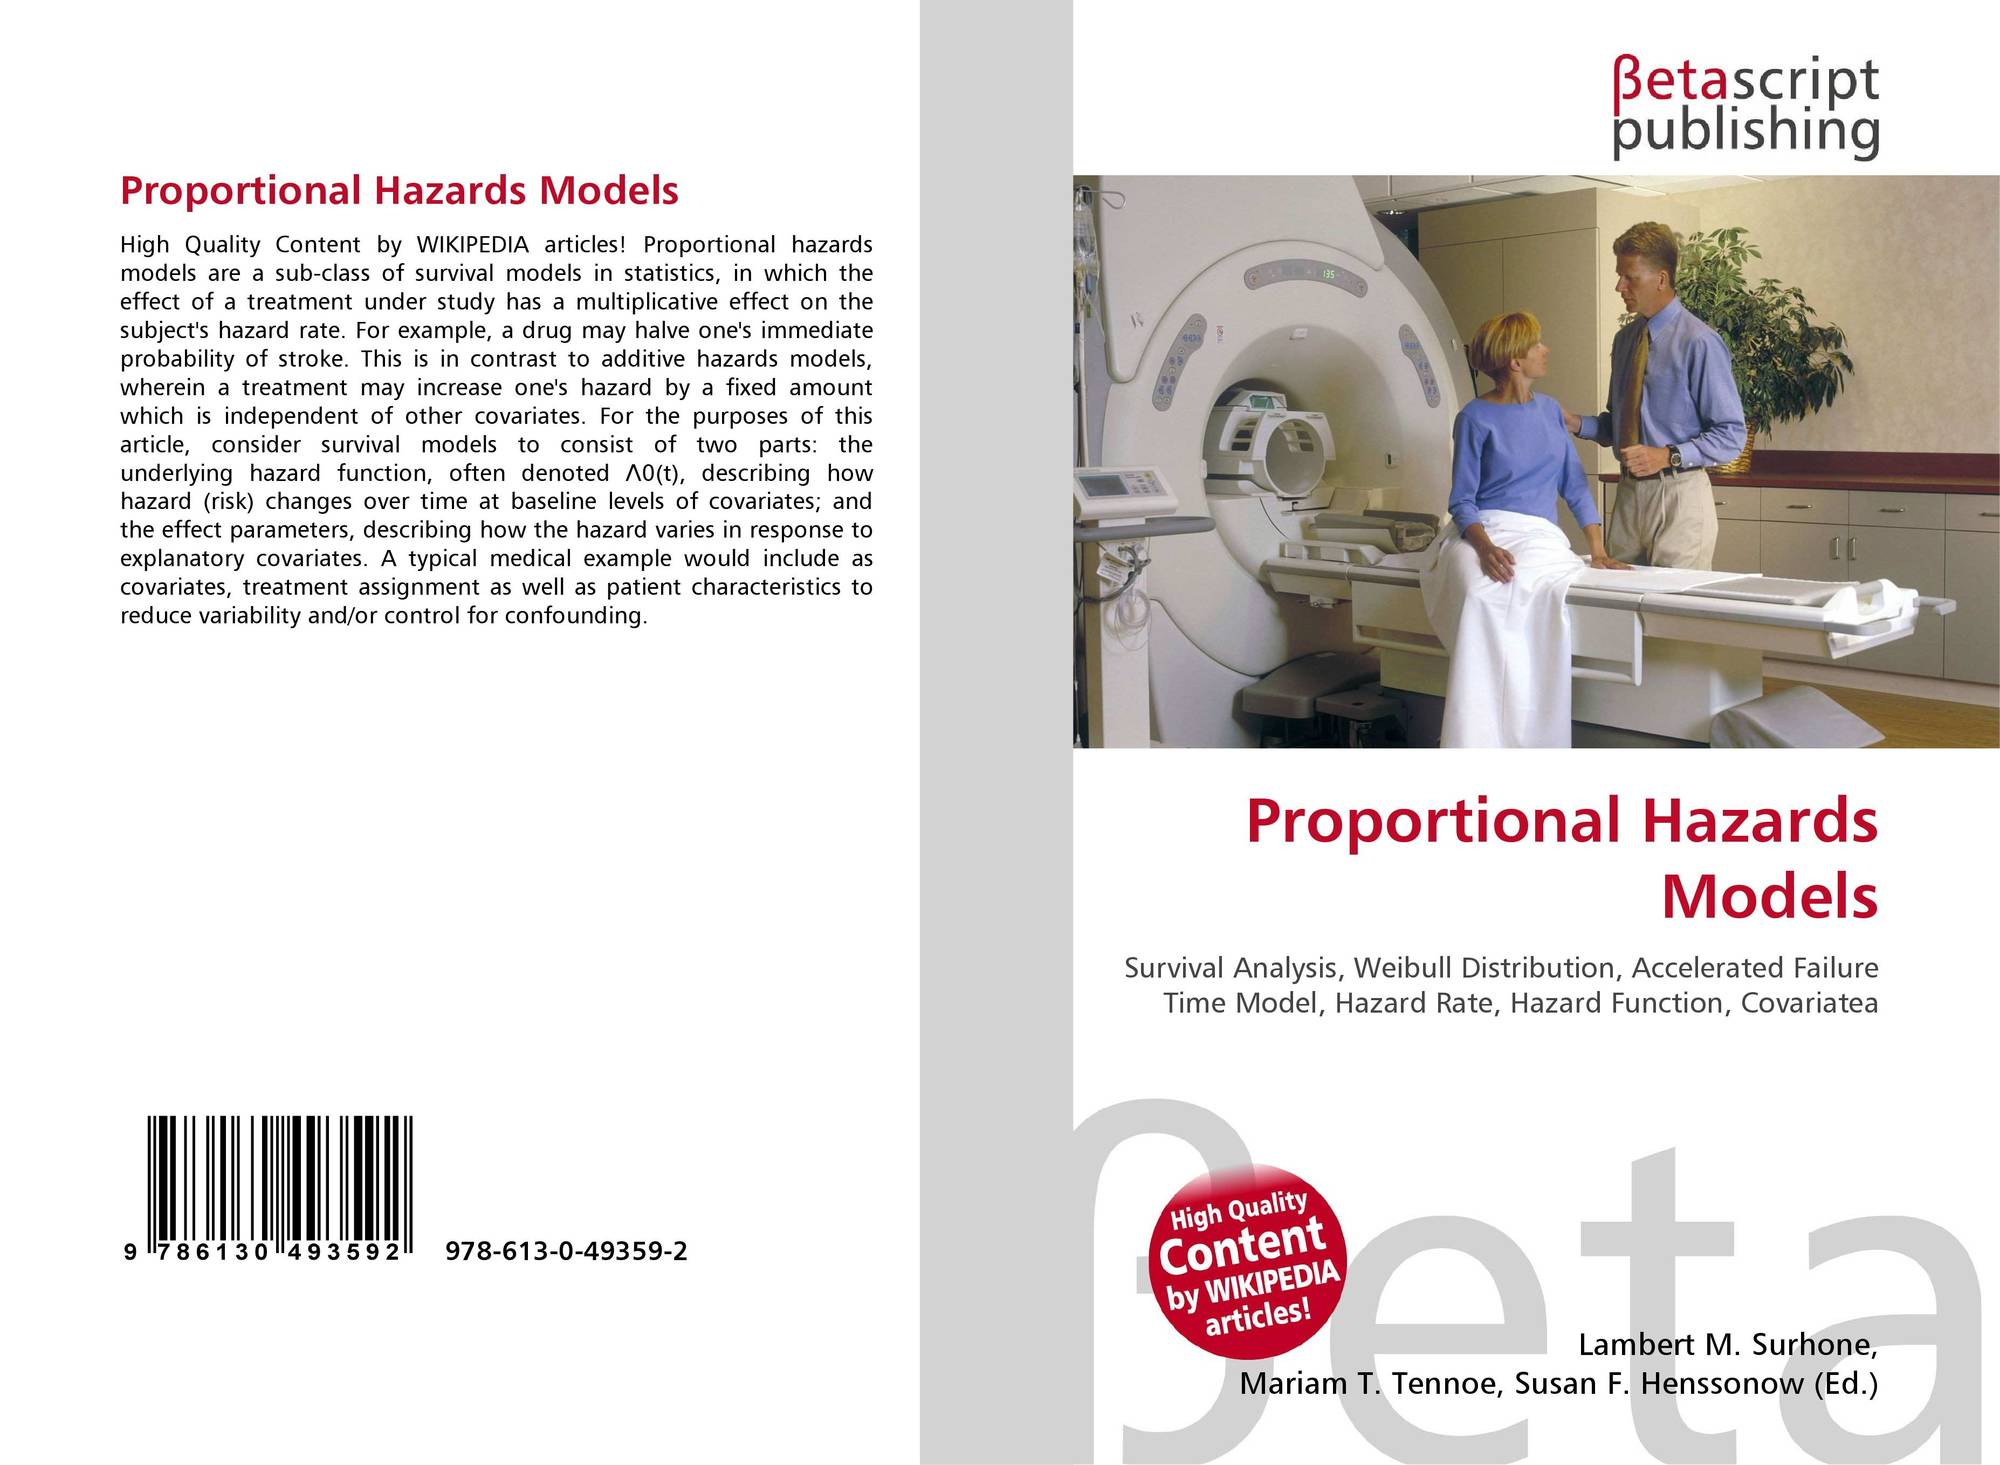 Proportional Hazards Models, 978-613-0-49359-2, 6130493592